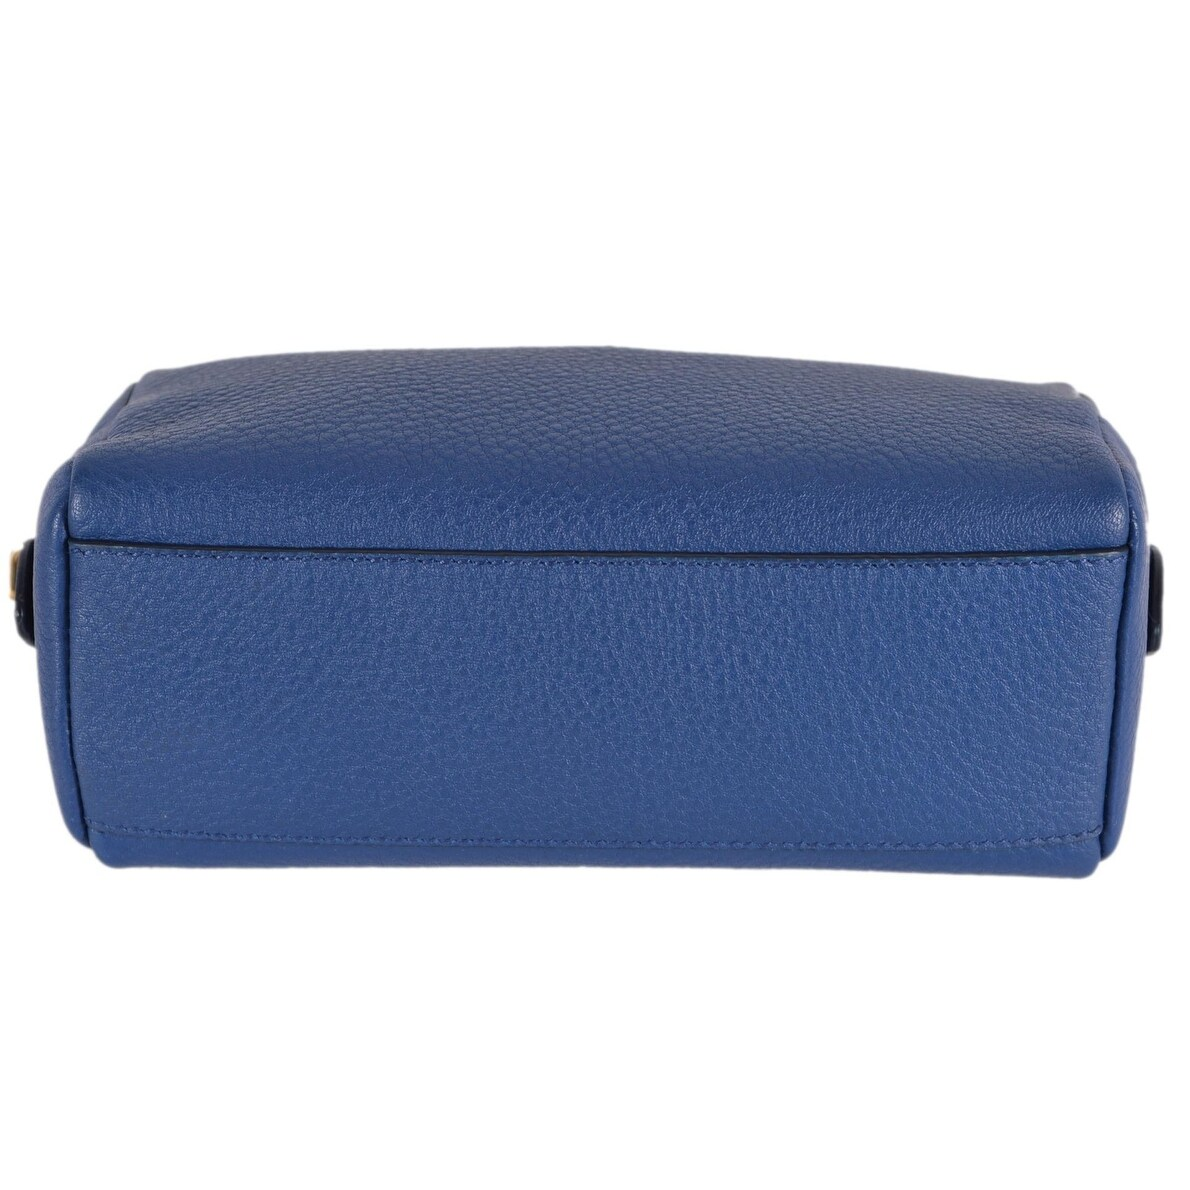 43790079a90e Shop Prada Women's 1ND004 Blue Textured Grain Leather Metal Logo Cosmetic  Bag - Free Shipping Today - Overstock - 26042991